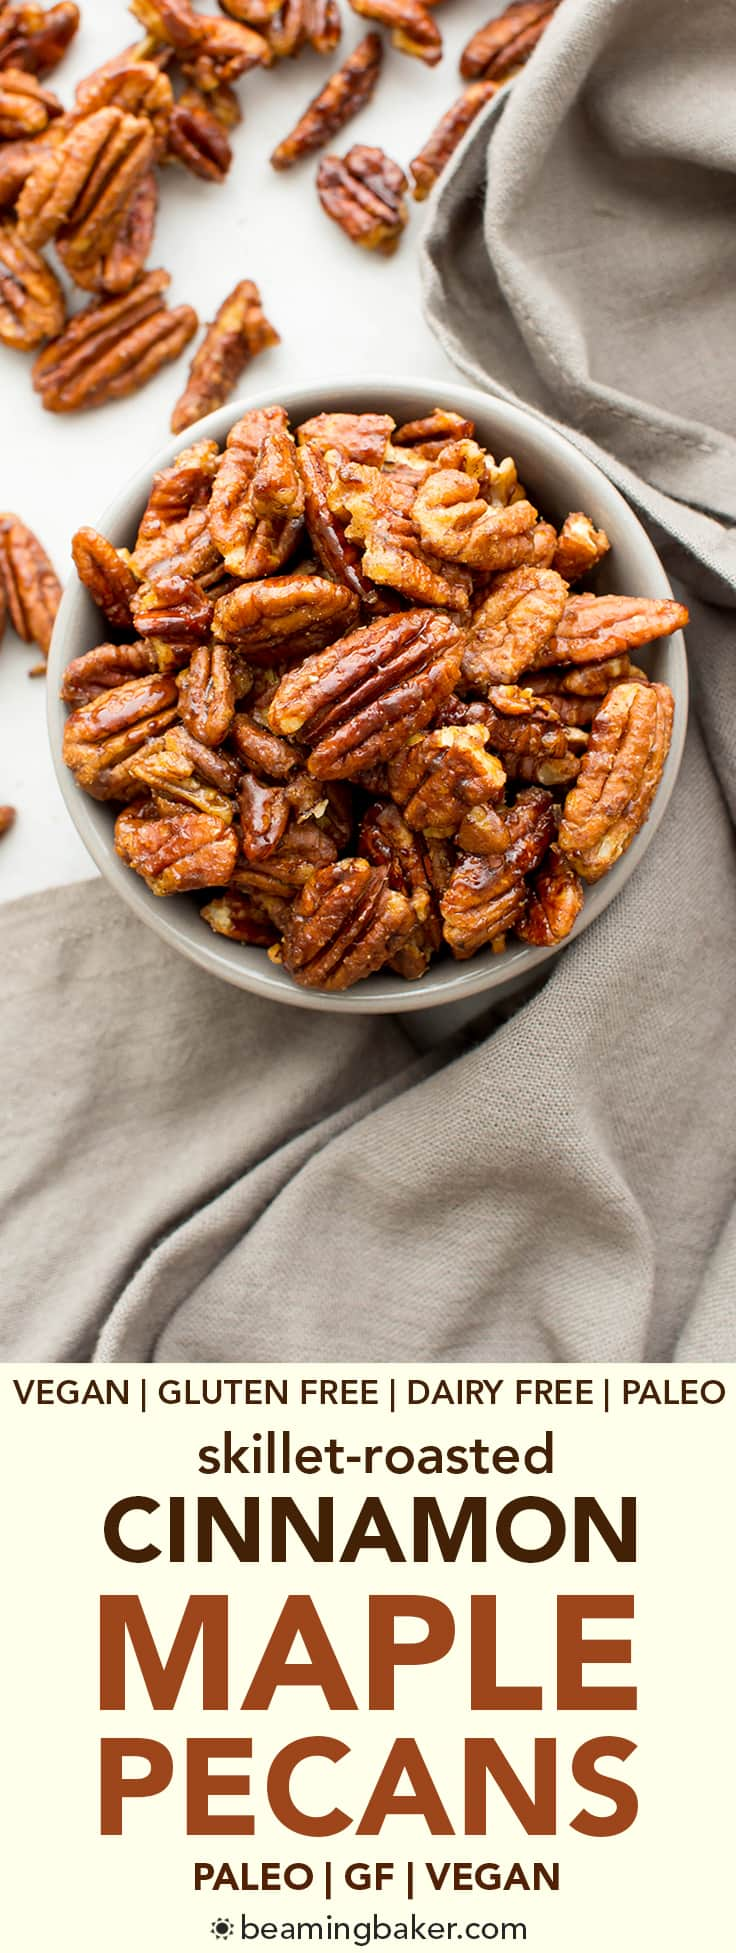 Skillet-Roasted Maple Cinnamon Pecans (V, GF, Paleo): a 6-ingredient recipe for warm, cozy skillet-roasted pecans glazed with coconut sugar and cinnamon. #Paleo #Vegan #GlutenFree #DairyFree | BeamingBaker.com